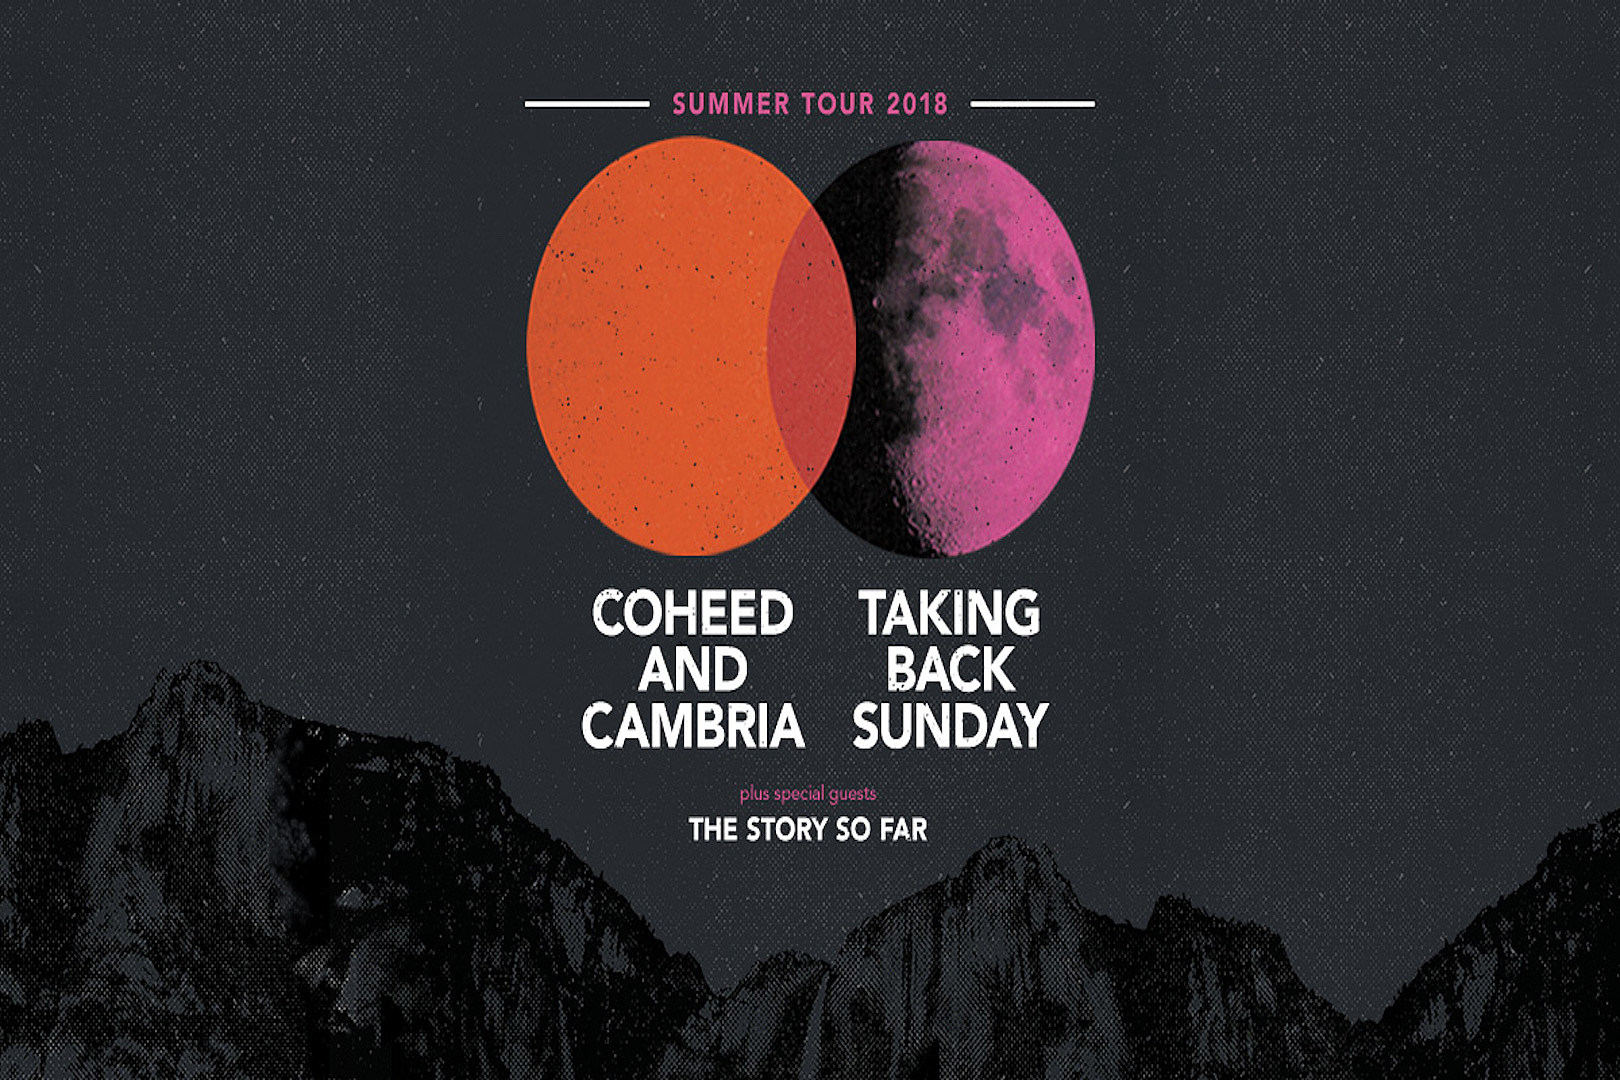 Coheed And Cambria Tour Dates 2020 Coheed and Cambria + Taking Back Sunday Announce Summer Tour